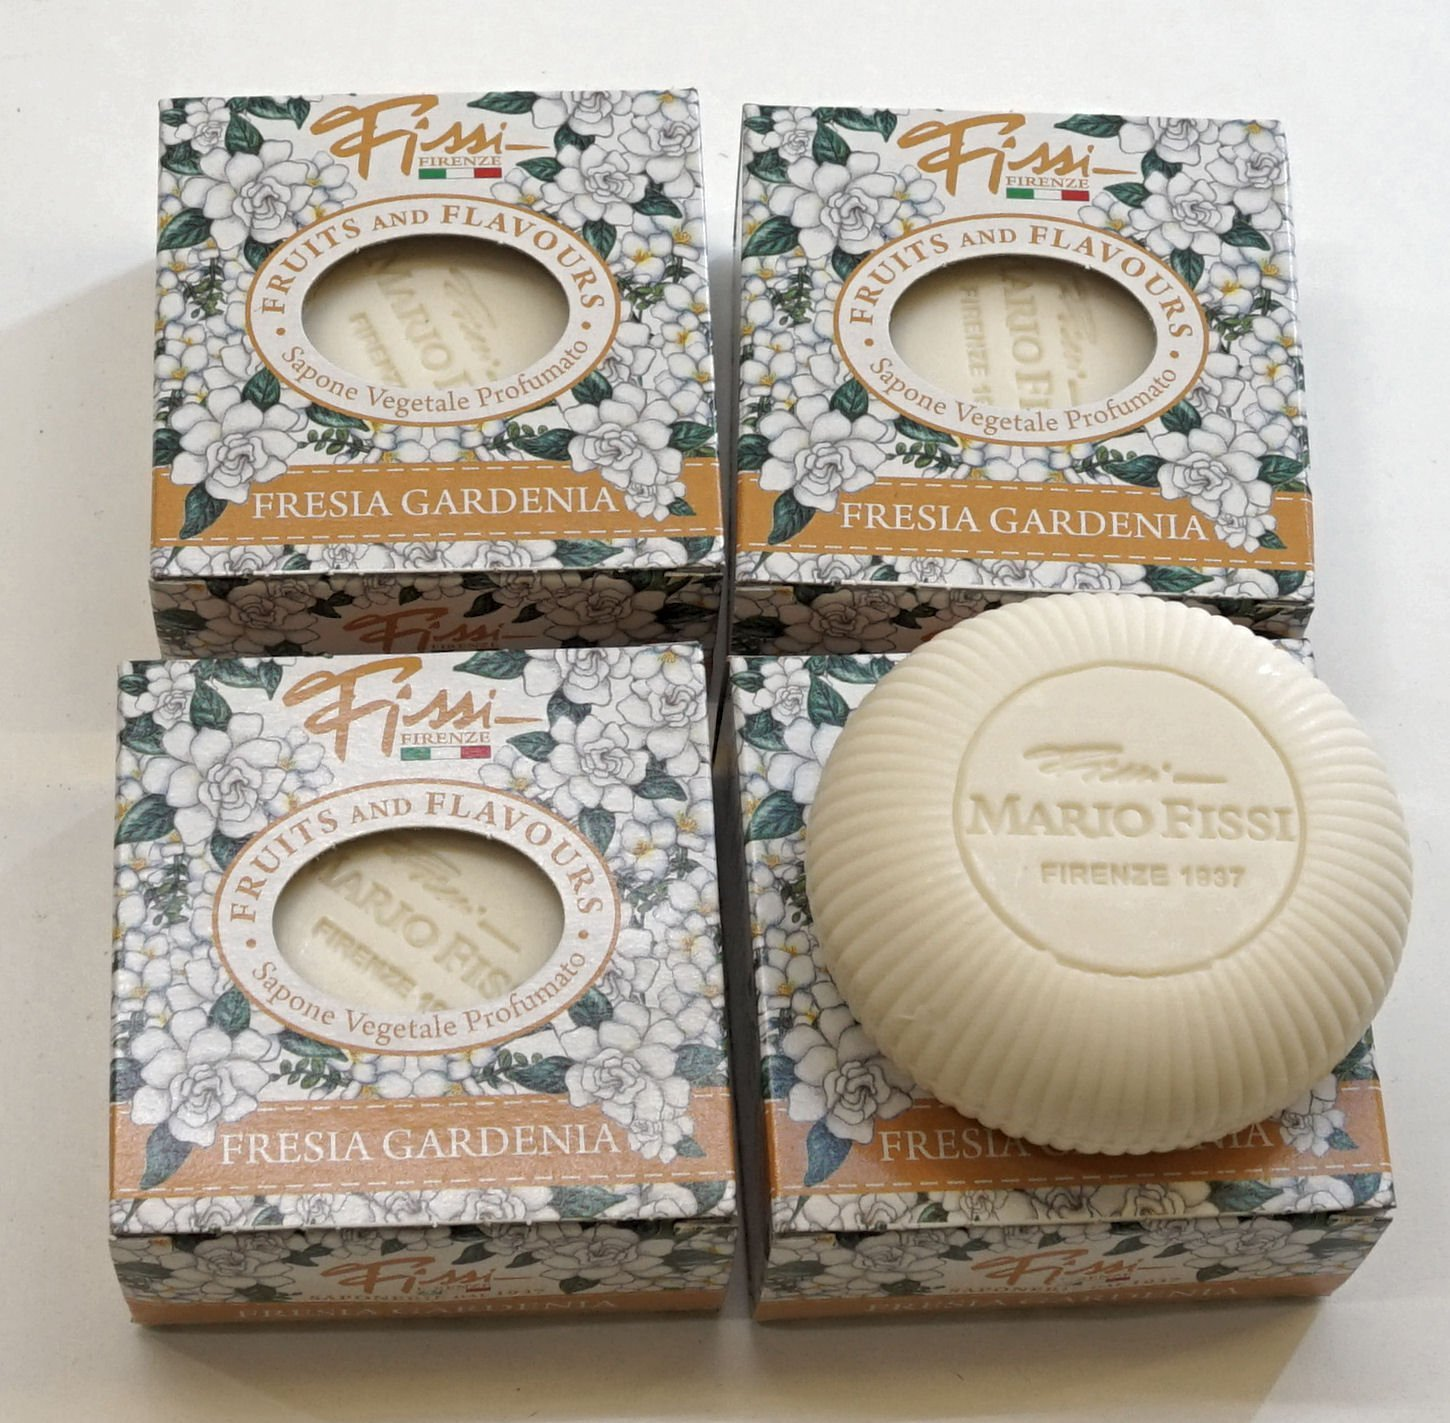 """Saponerie Mario Fissi: """"Fresia Gardenia"""" Perfumed Vegetal Soap, Freesia and Gardenia Scent, """"Fruits and Flavours"""" Line 3.5 Ounce (100g) Package Pack of 4 [ Italian Import ]"""